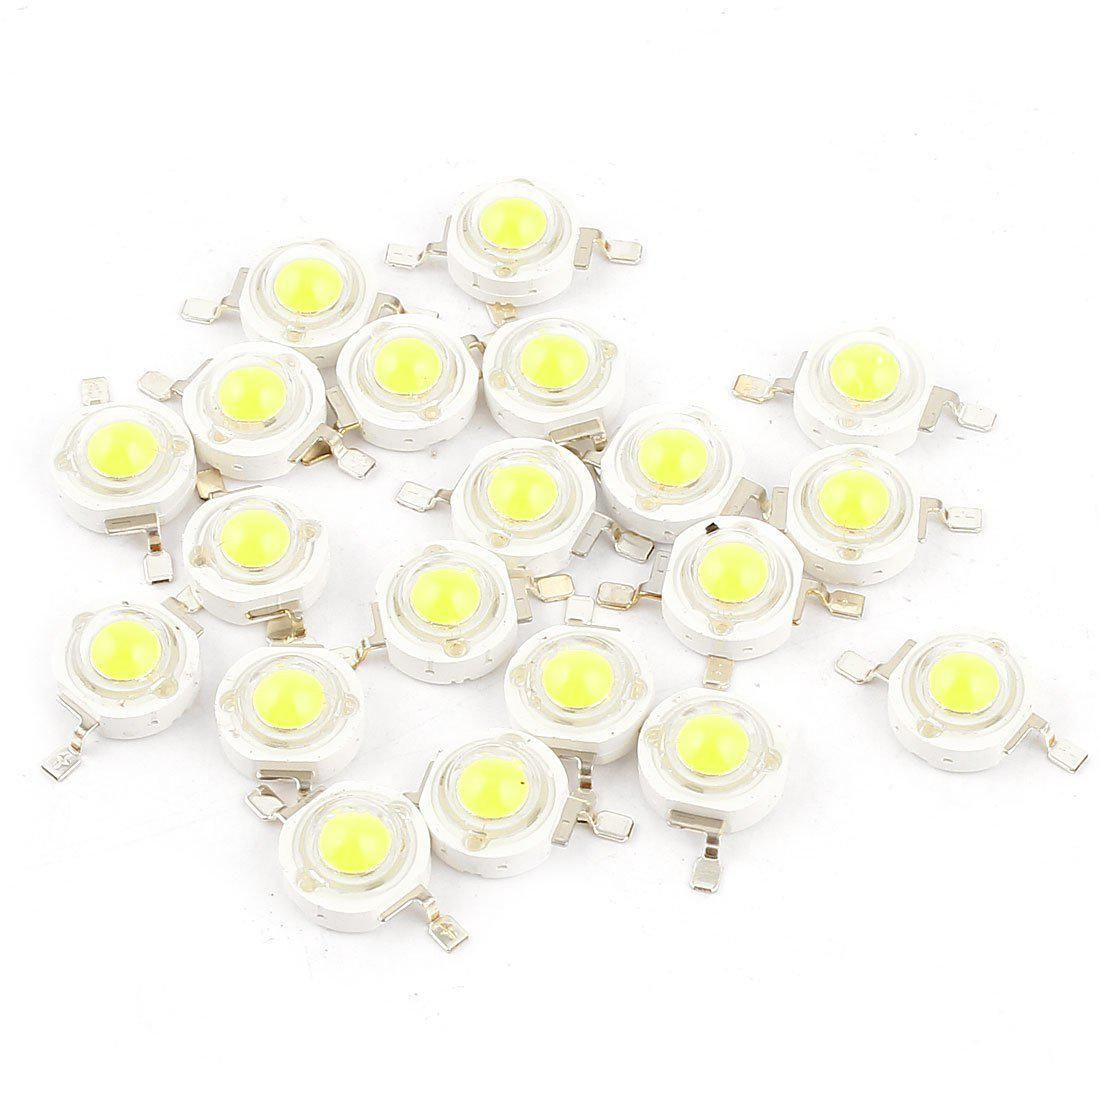 10pcs 1W super bright LED lamp beads 100-120LM white  light emitting diode 6000-6500K. Yesterday's price: US $3.60 (3.20 EUR). Today's price (November 25, 2018): US $1.91 (1.70 EUR). Discount: 47%. #Lights #Lighting #lightemittingdiode 10pcs 1W super bright LED lamp beads 100-120LM white  light emitting diode 6000-6500K. Yesterday's price: US $3.60 (3.20 EUR). Today's price (November 25, 2018): US $1.91 (1.70 EUR). Discount: 47%. #Lights #Lighting #lightemittingdiode 10pcs 1W super bright LED la #lightemittingdiode